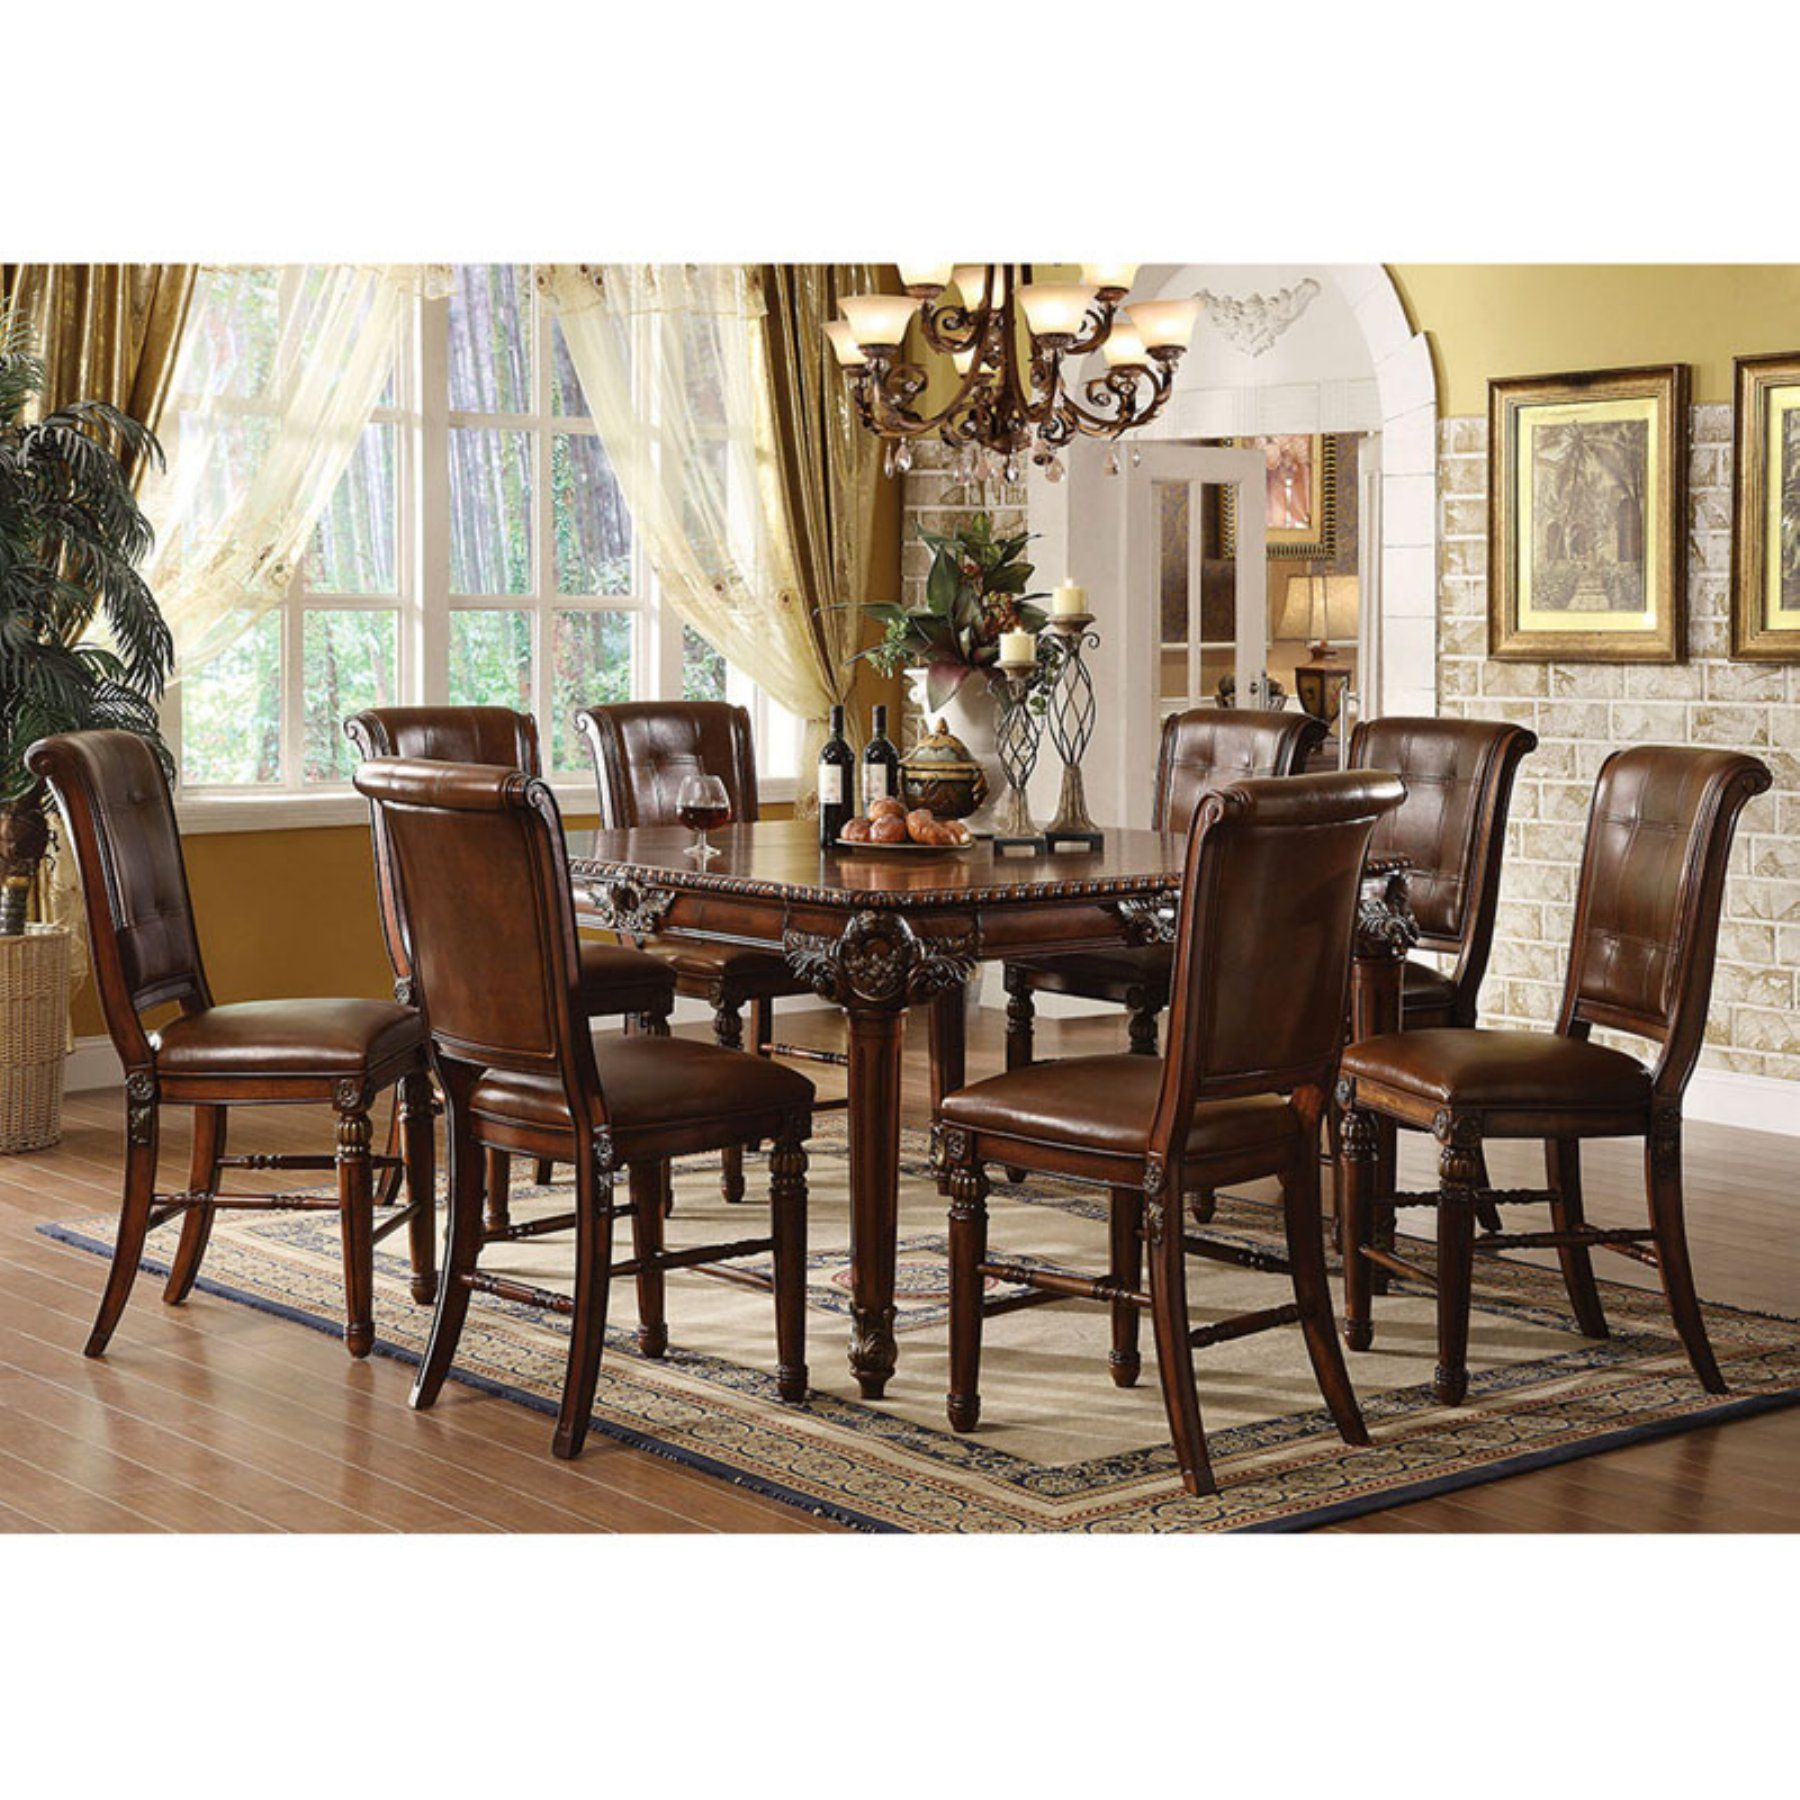 Acme Furniture Winfred 9 Piece Rectangular Counter Height Dining Magnificent Acme Dining Room Set 2018